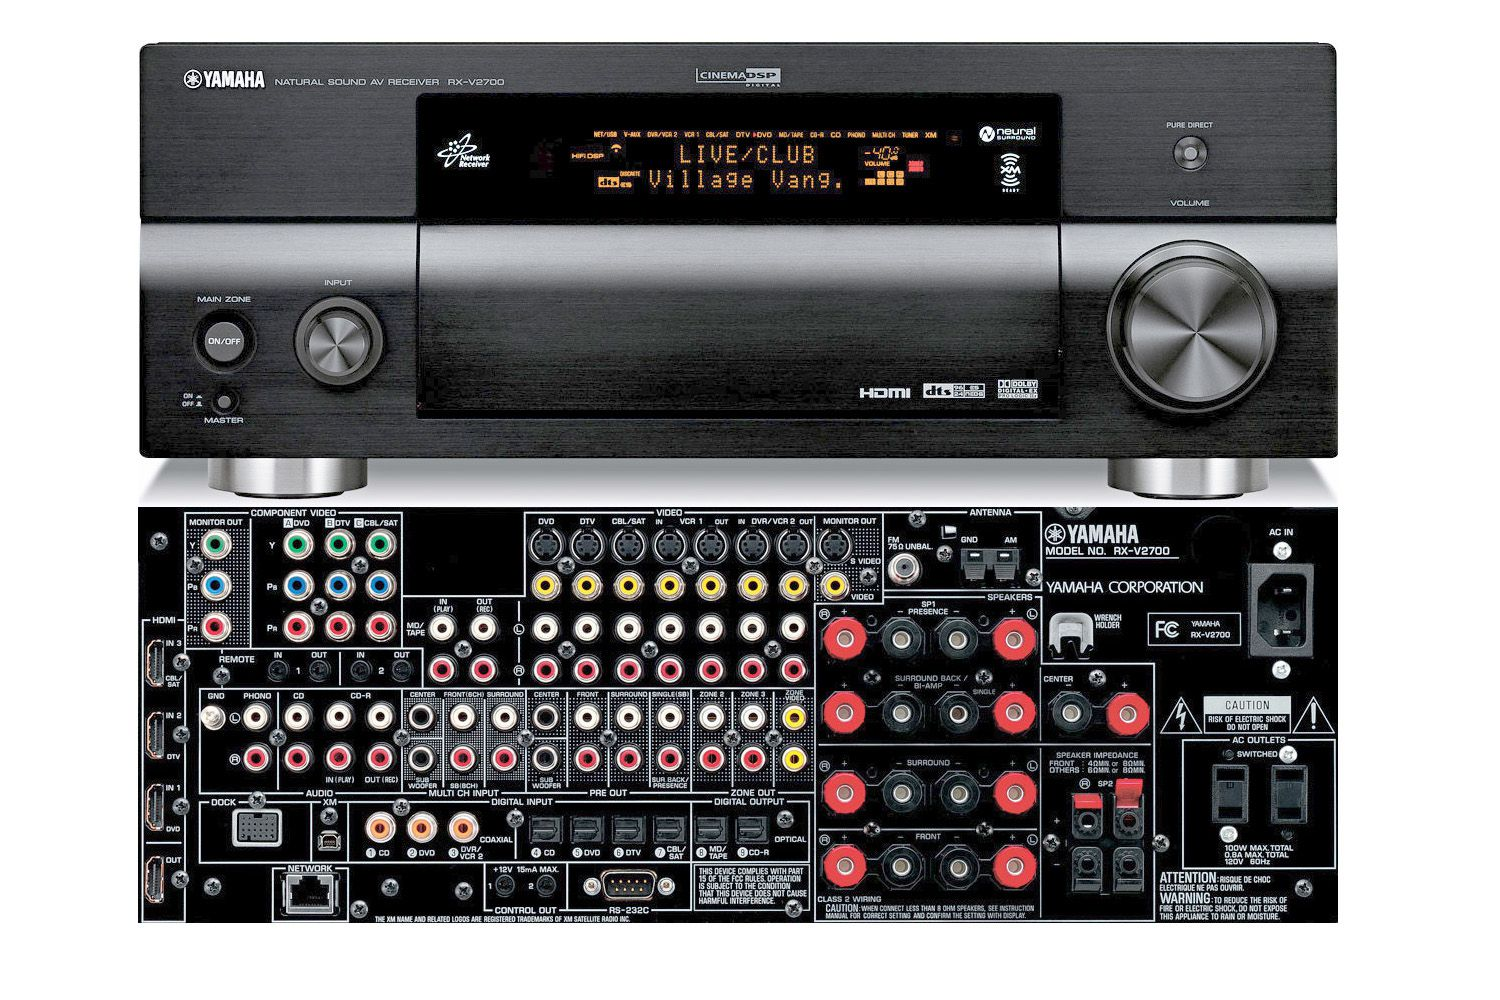 home theater receiver. yamaha rx-v2700 7.1 channel home theater receiver - full review